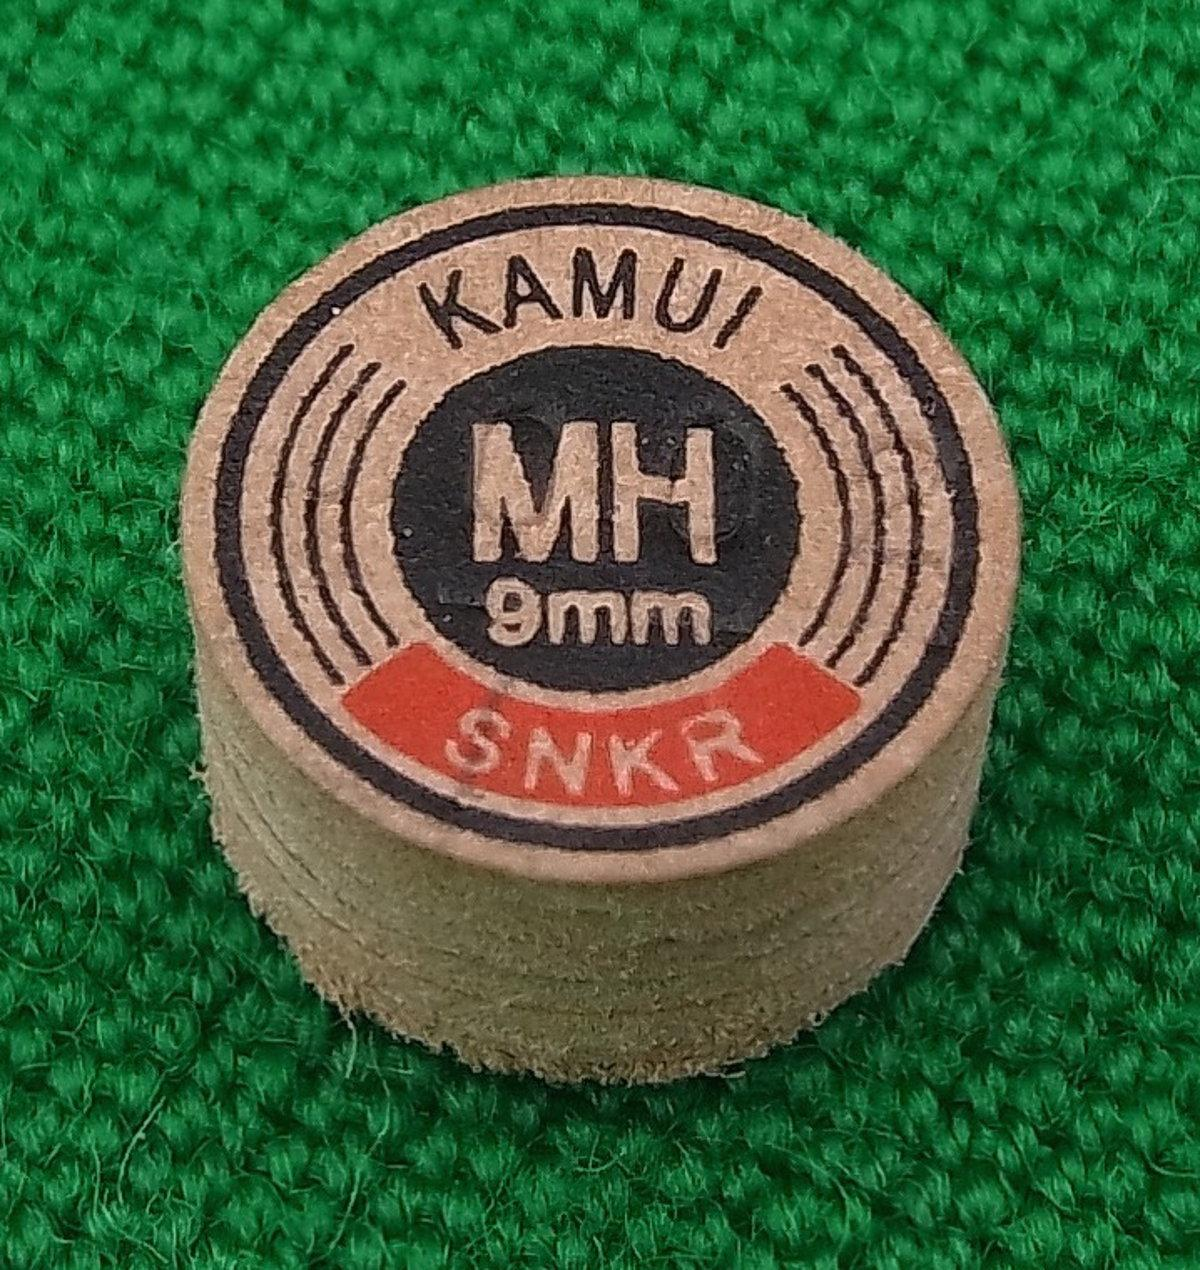 Kamui Original Snooker Tip (9mm, Medium Hard)